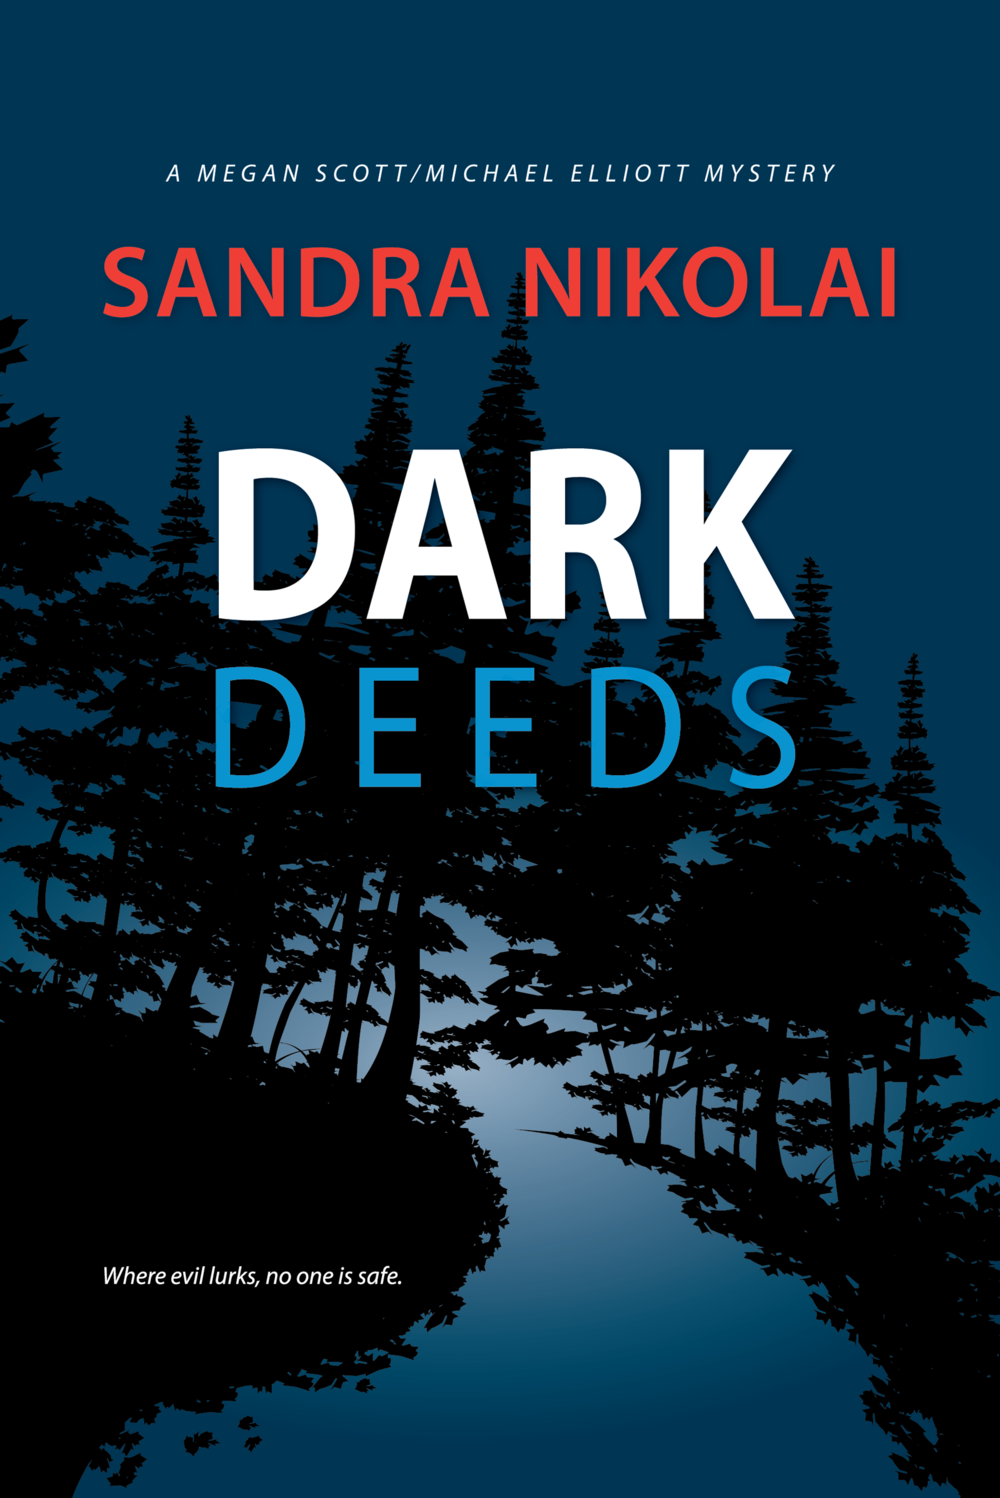 Dark Deeds, series book 4